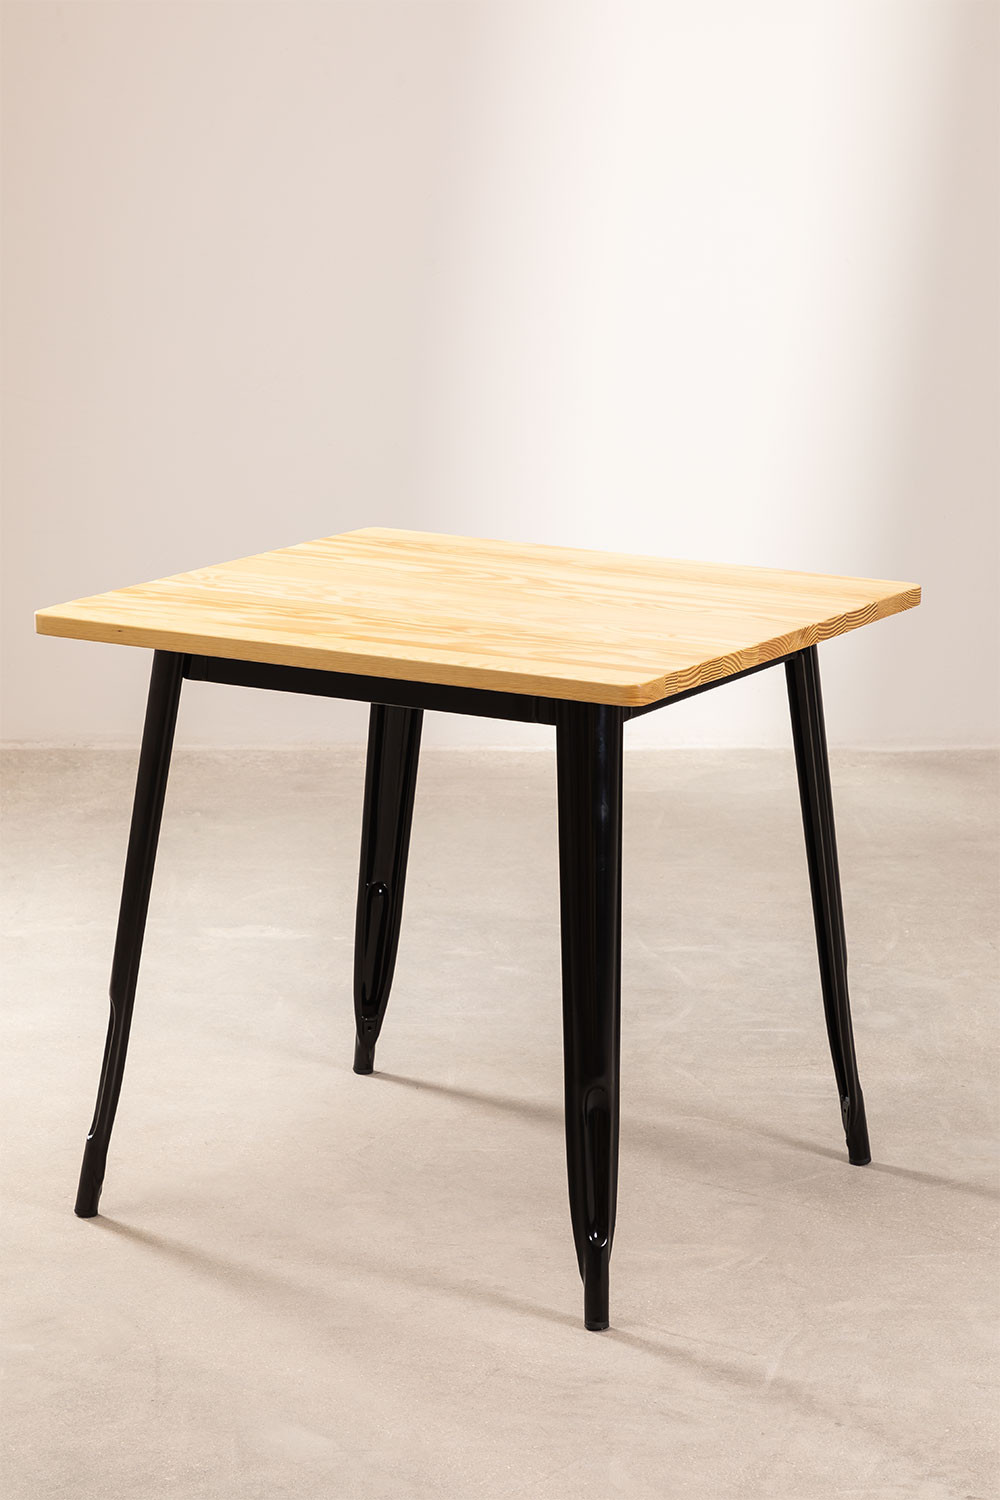 Wooden LIX Table (80x80), gallery image 1